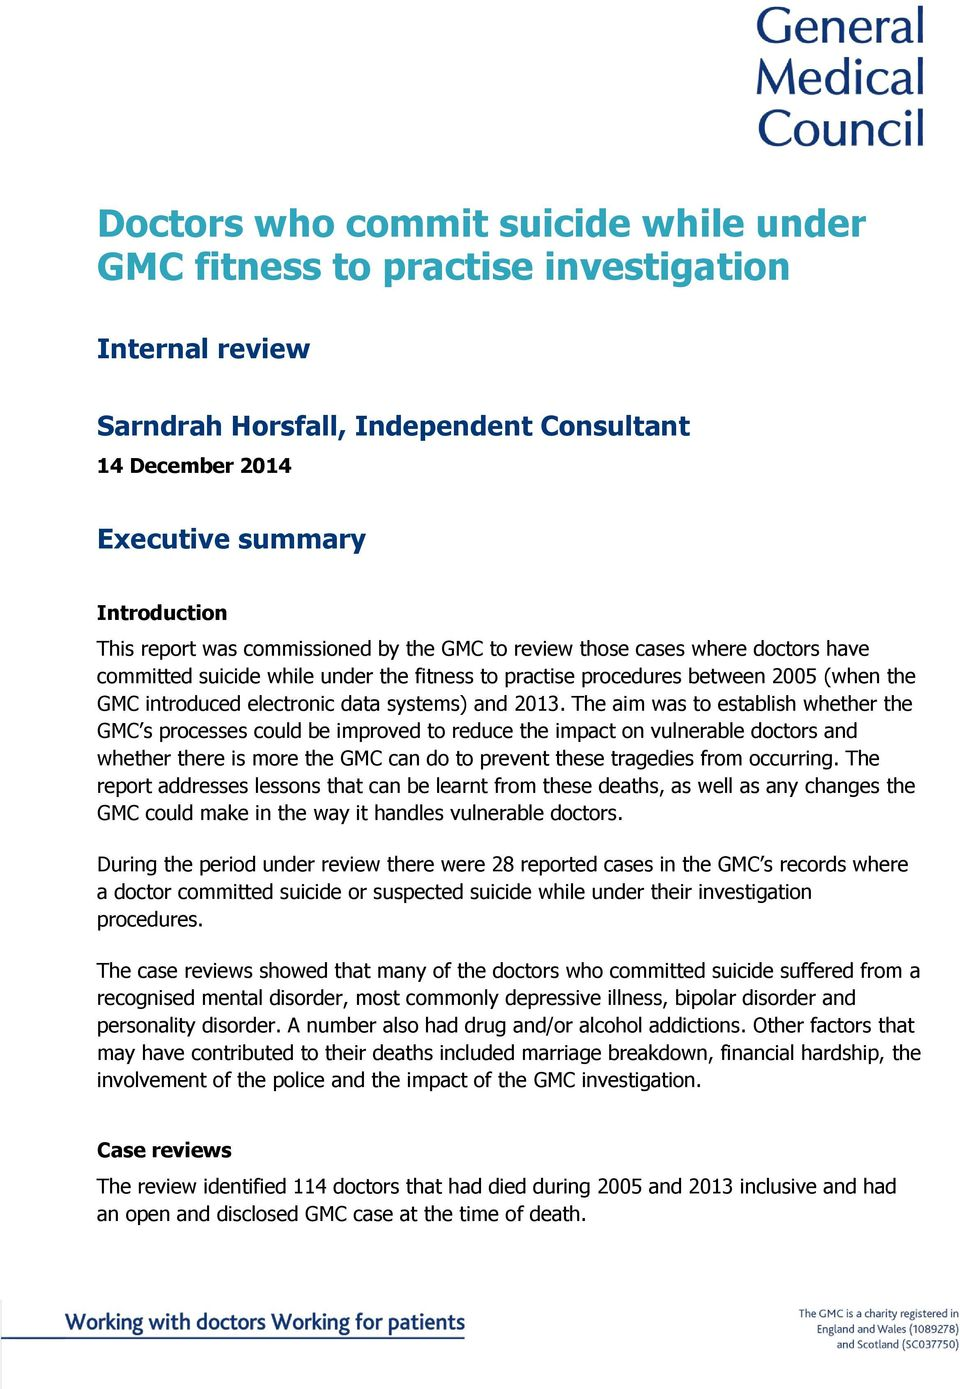 2013. The aim was to establish whether the GMC s processes could be improved to reduce the impact on vulnerable doctors and whether there is more the GMC can do to prevent these tragedies from